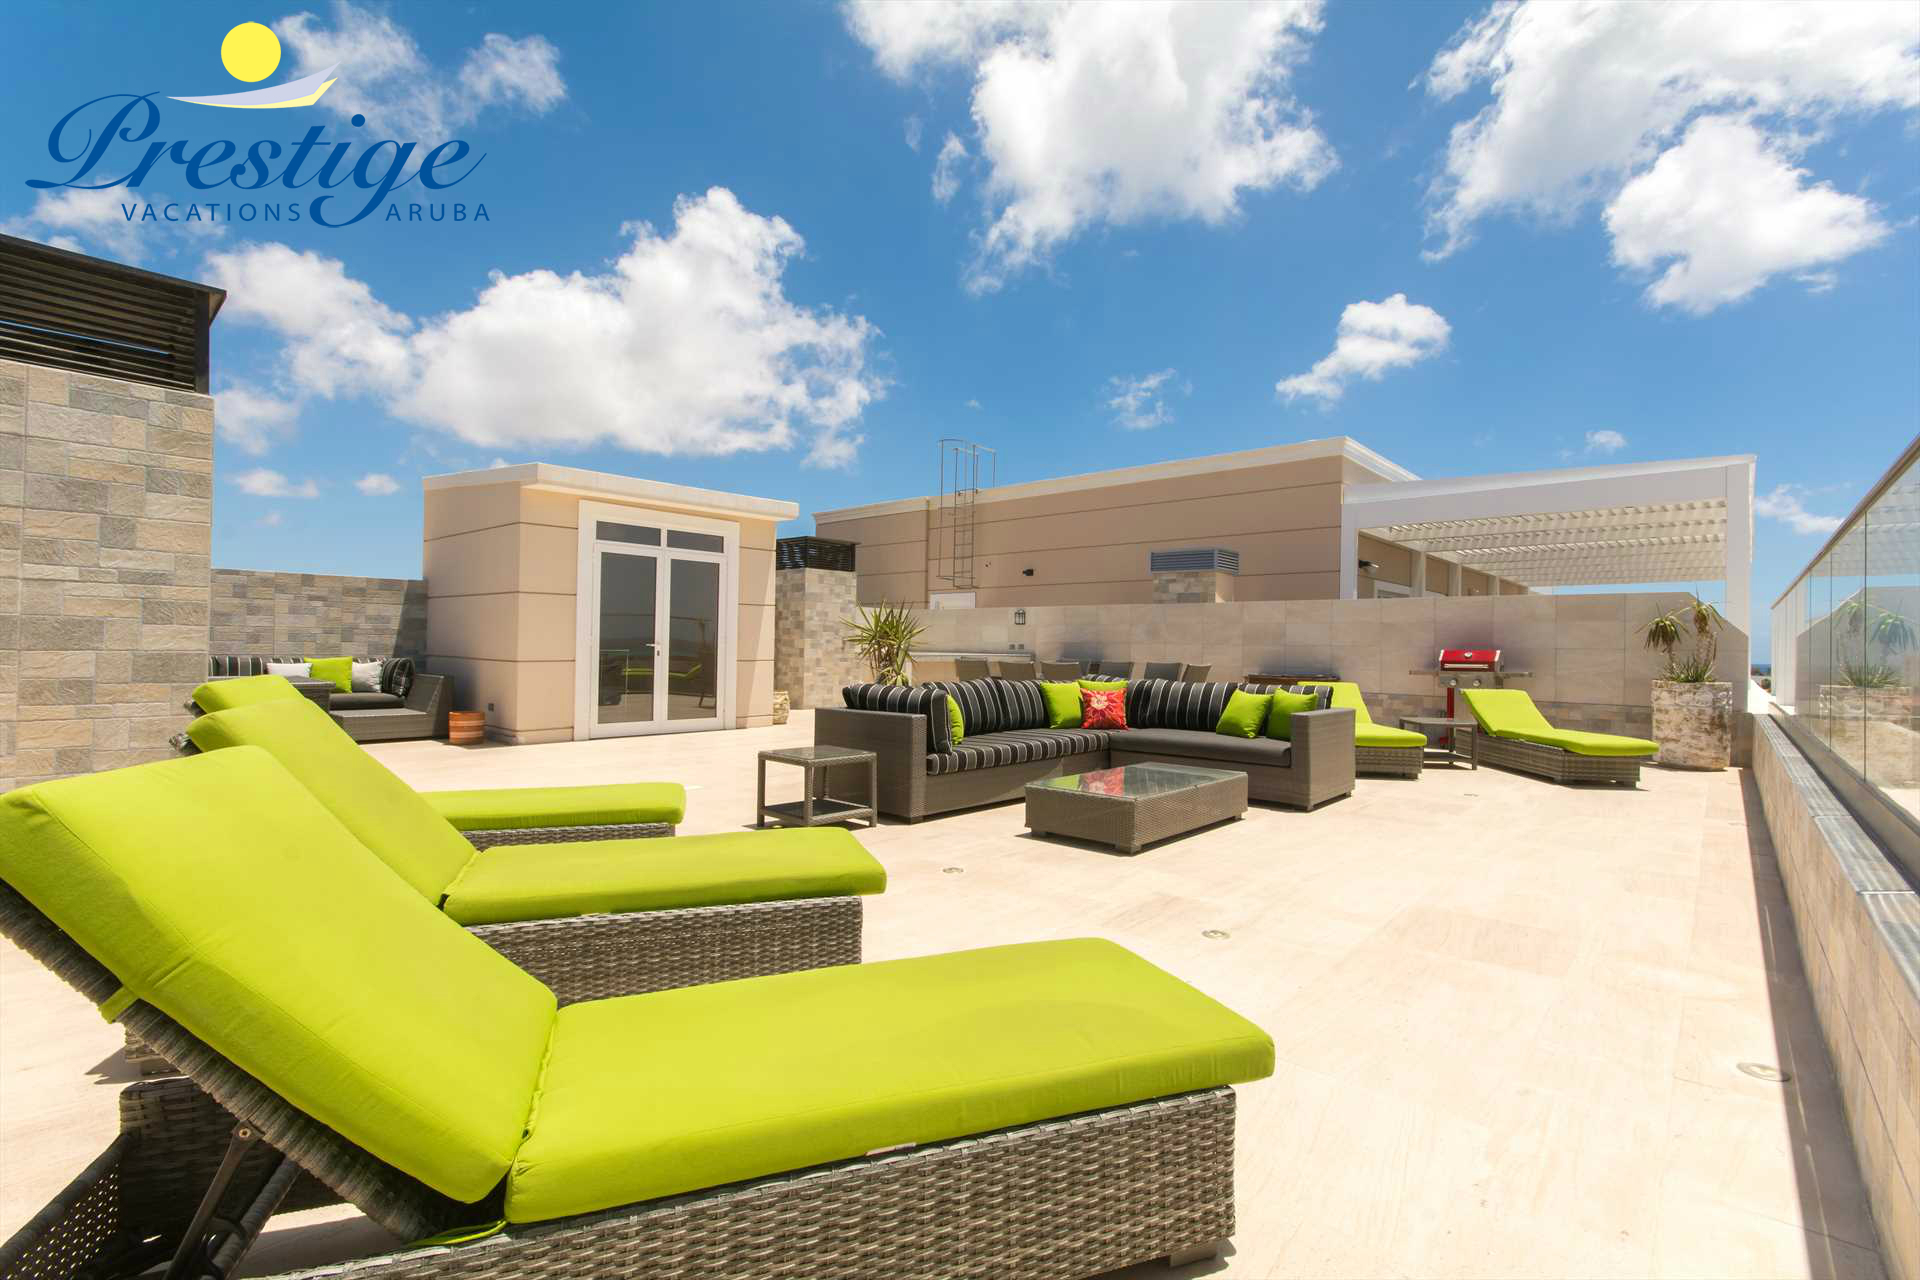 Your sophisticated private vacation rental penthouse located at the LeVent Beach Resort Aruba (no BBQ-grill on the rooftop)